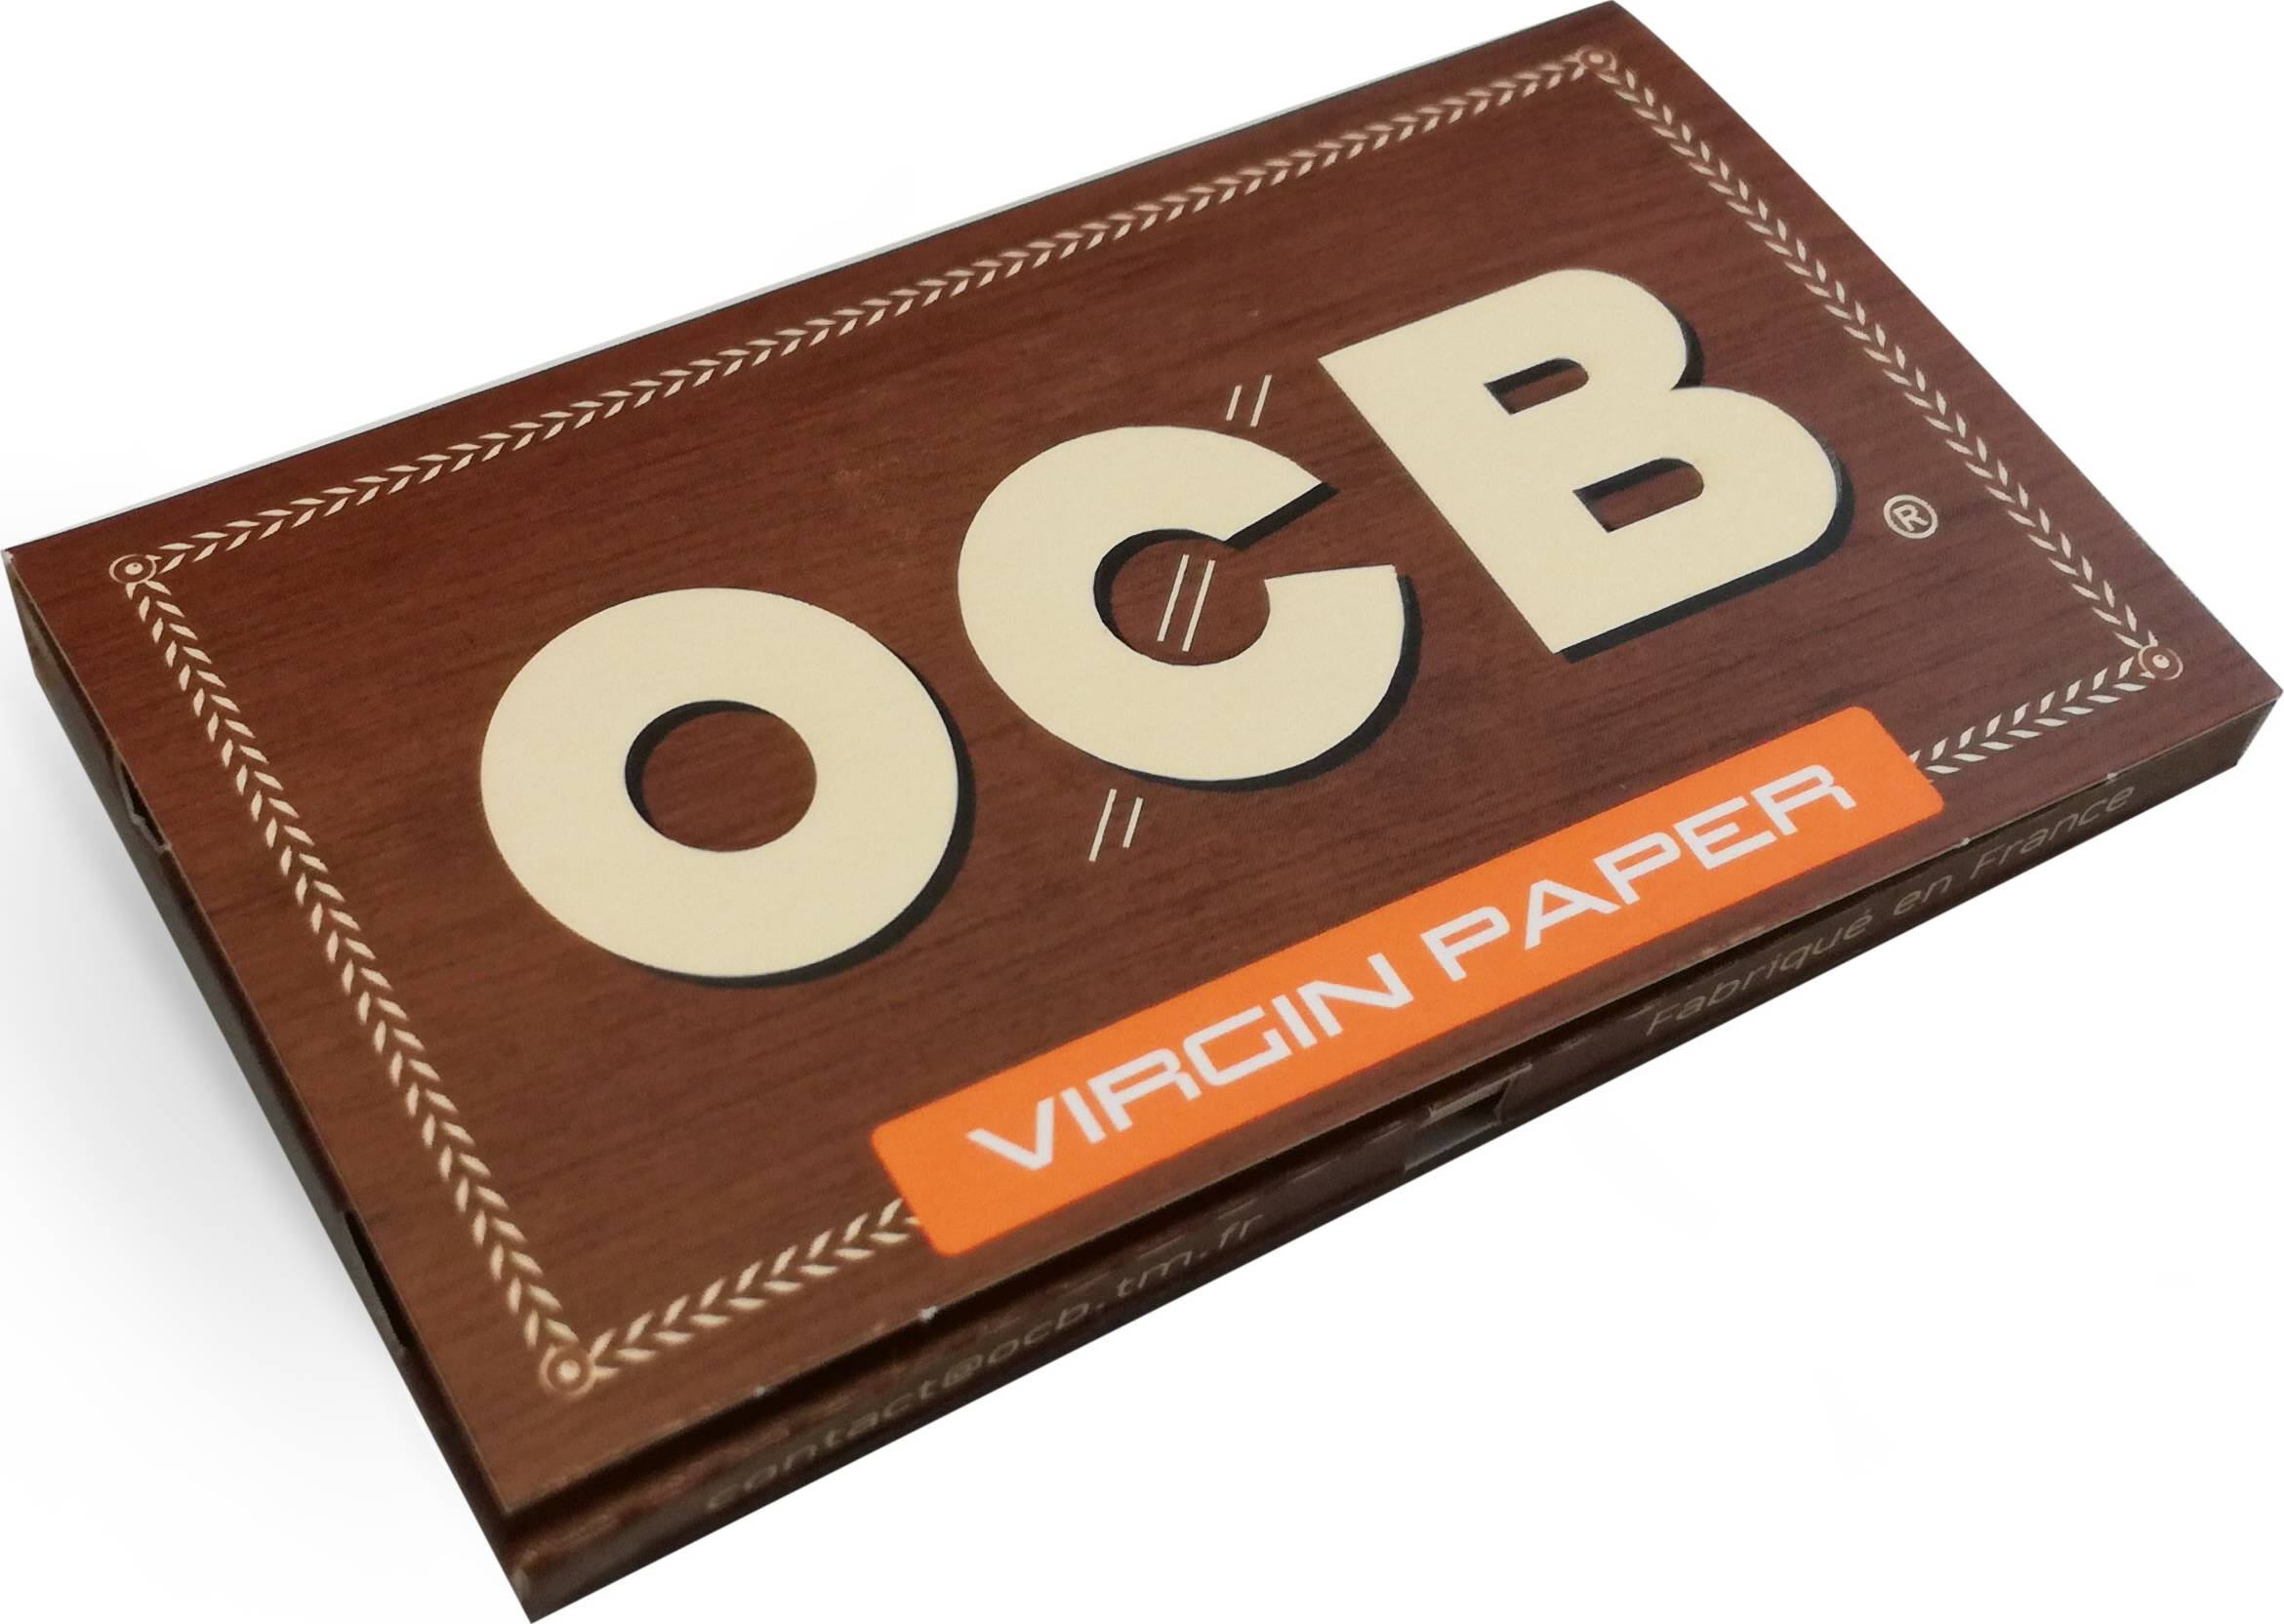 OCB double Vigin Bte 50